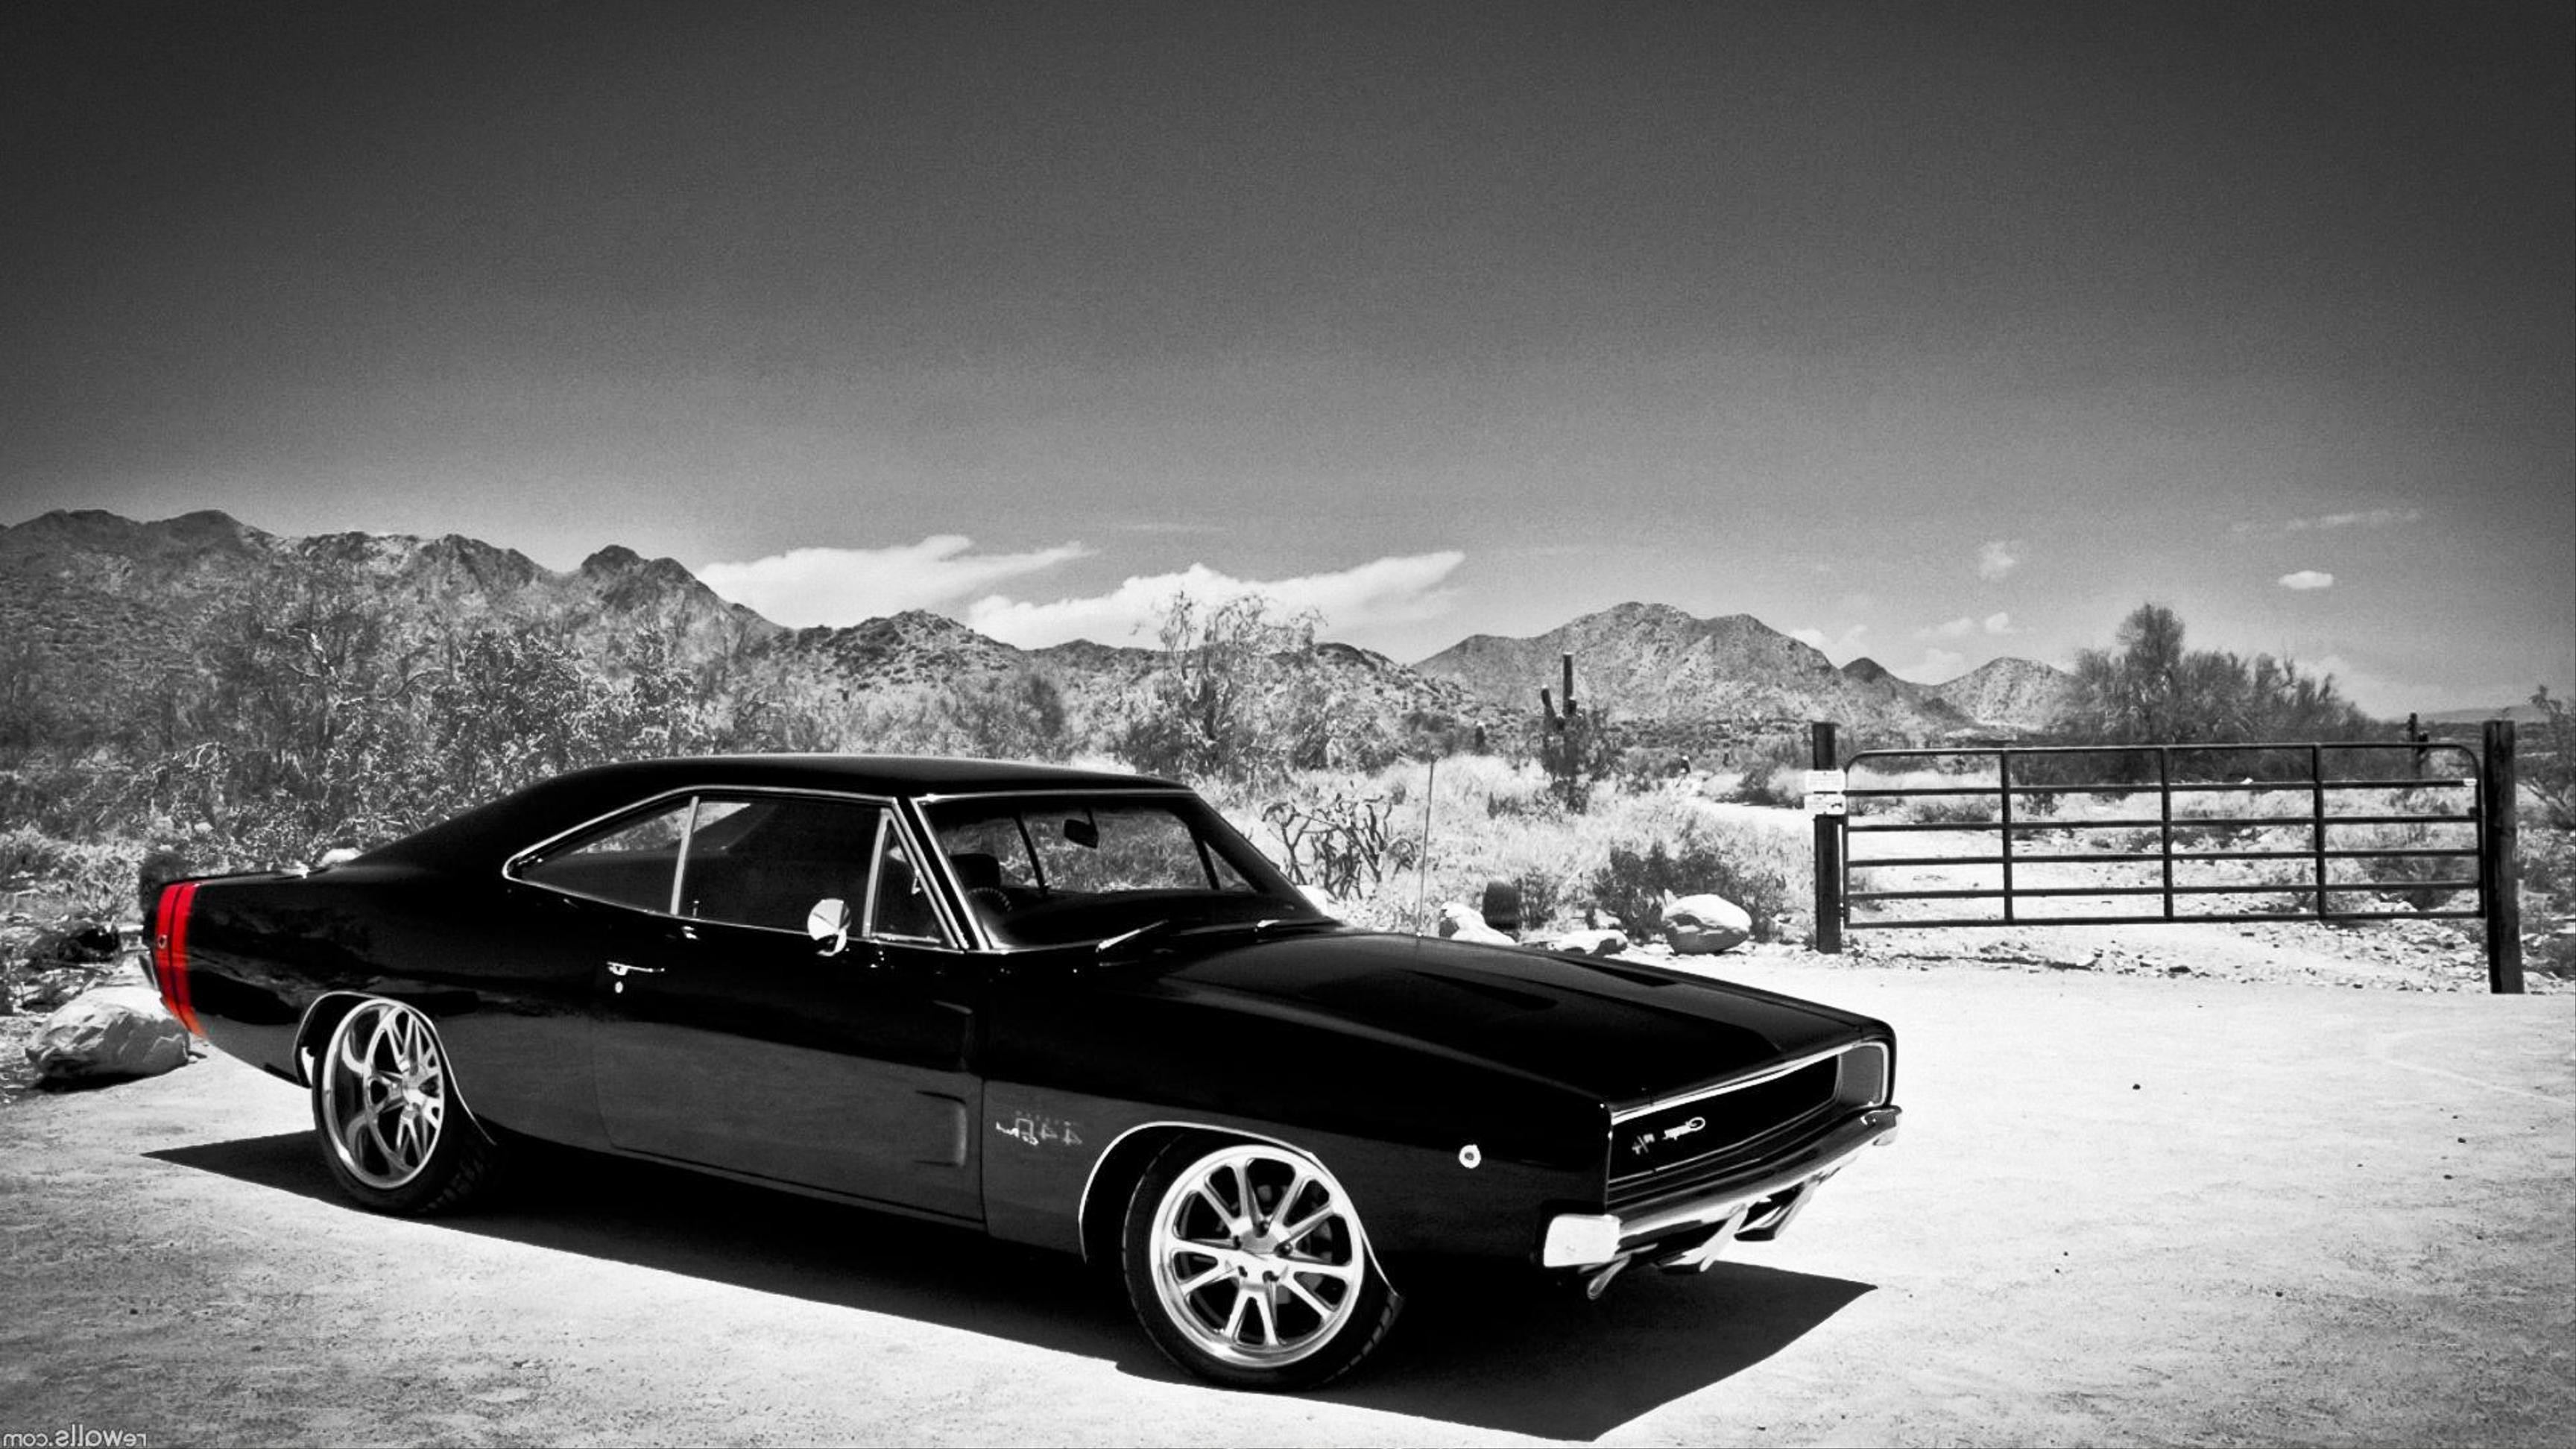 Car Wallpaper High Resolution: Muscle Cars Wallpapers High Resolution (48+ Images